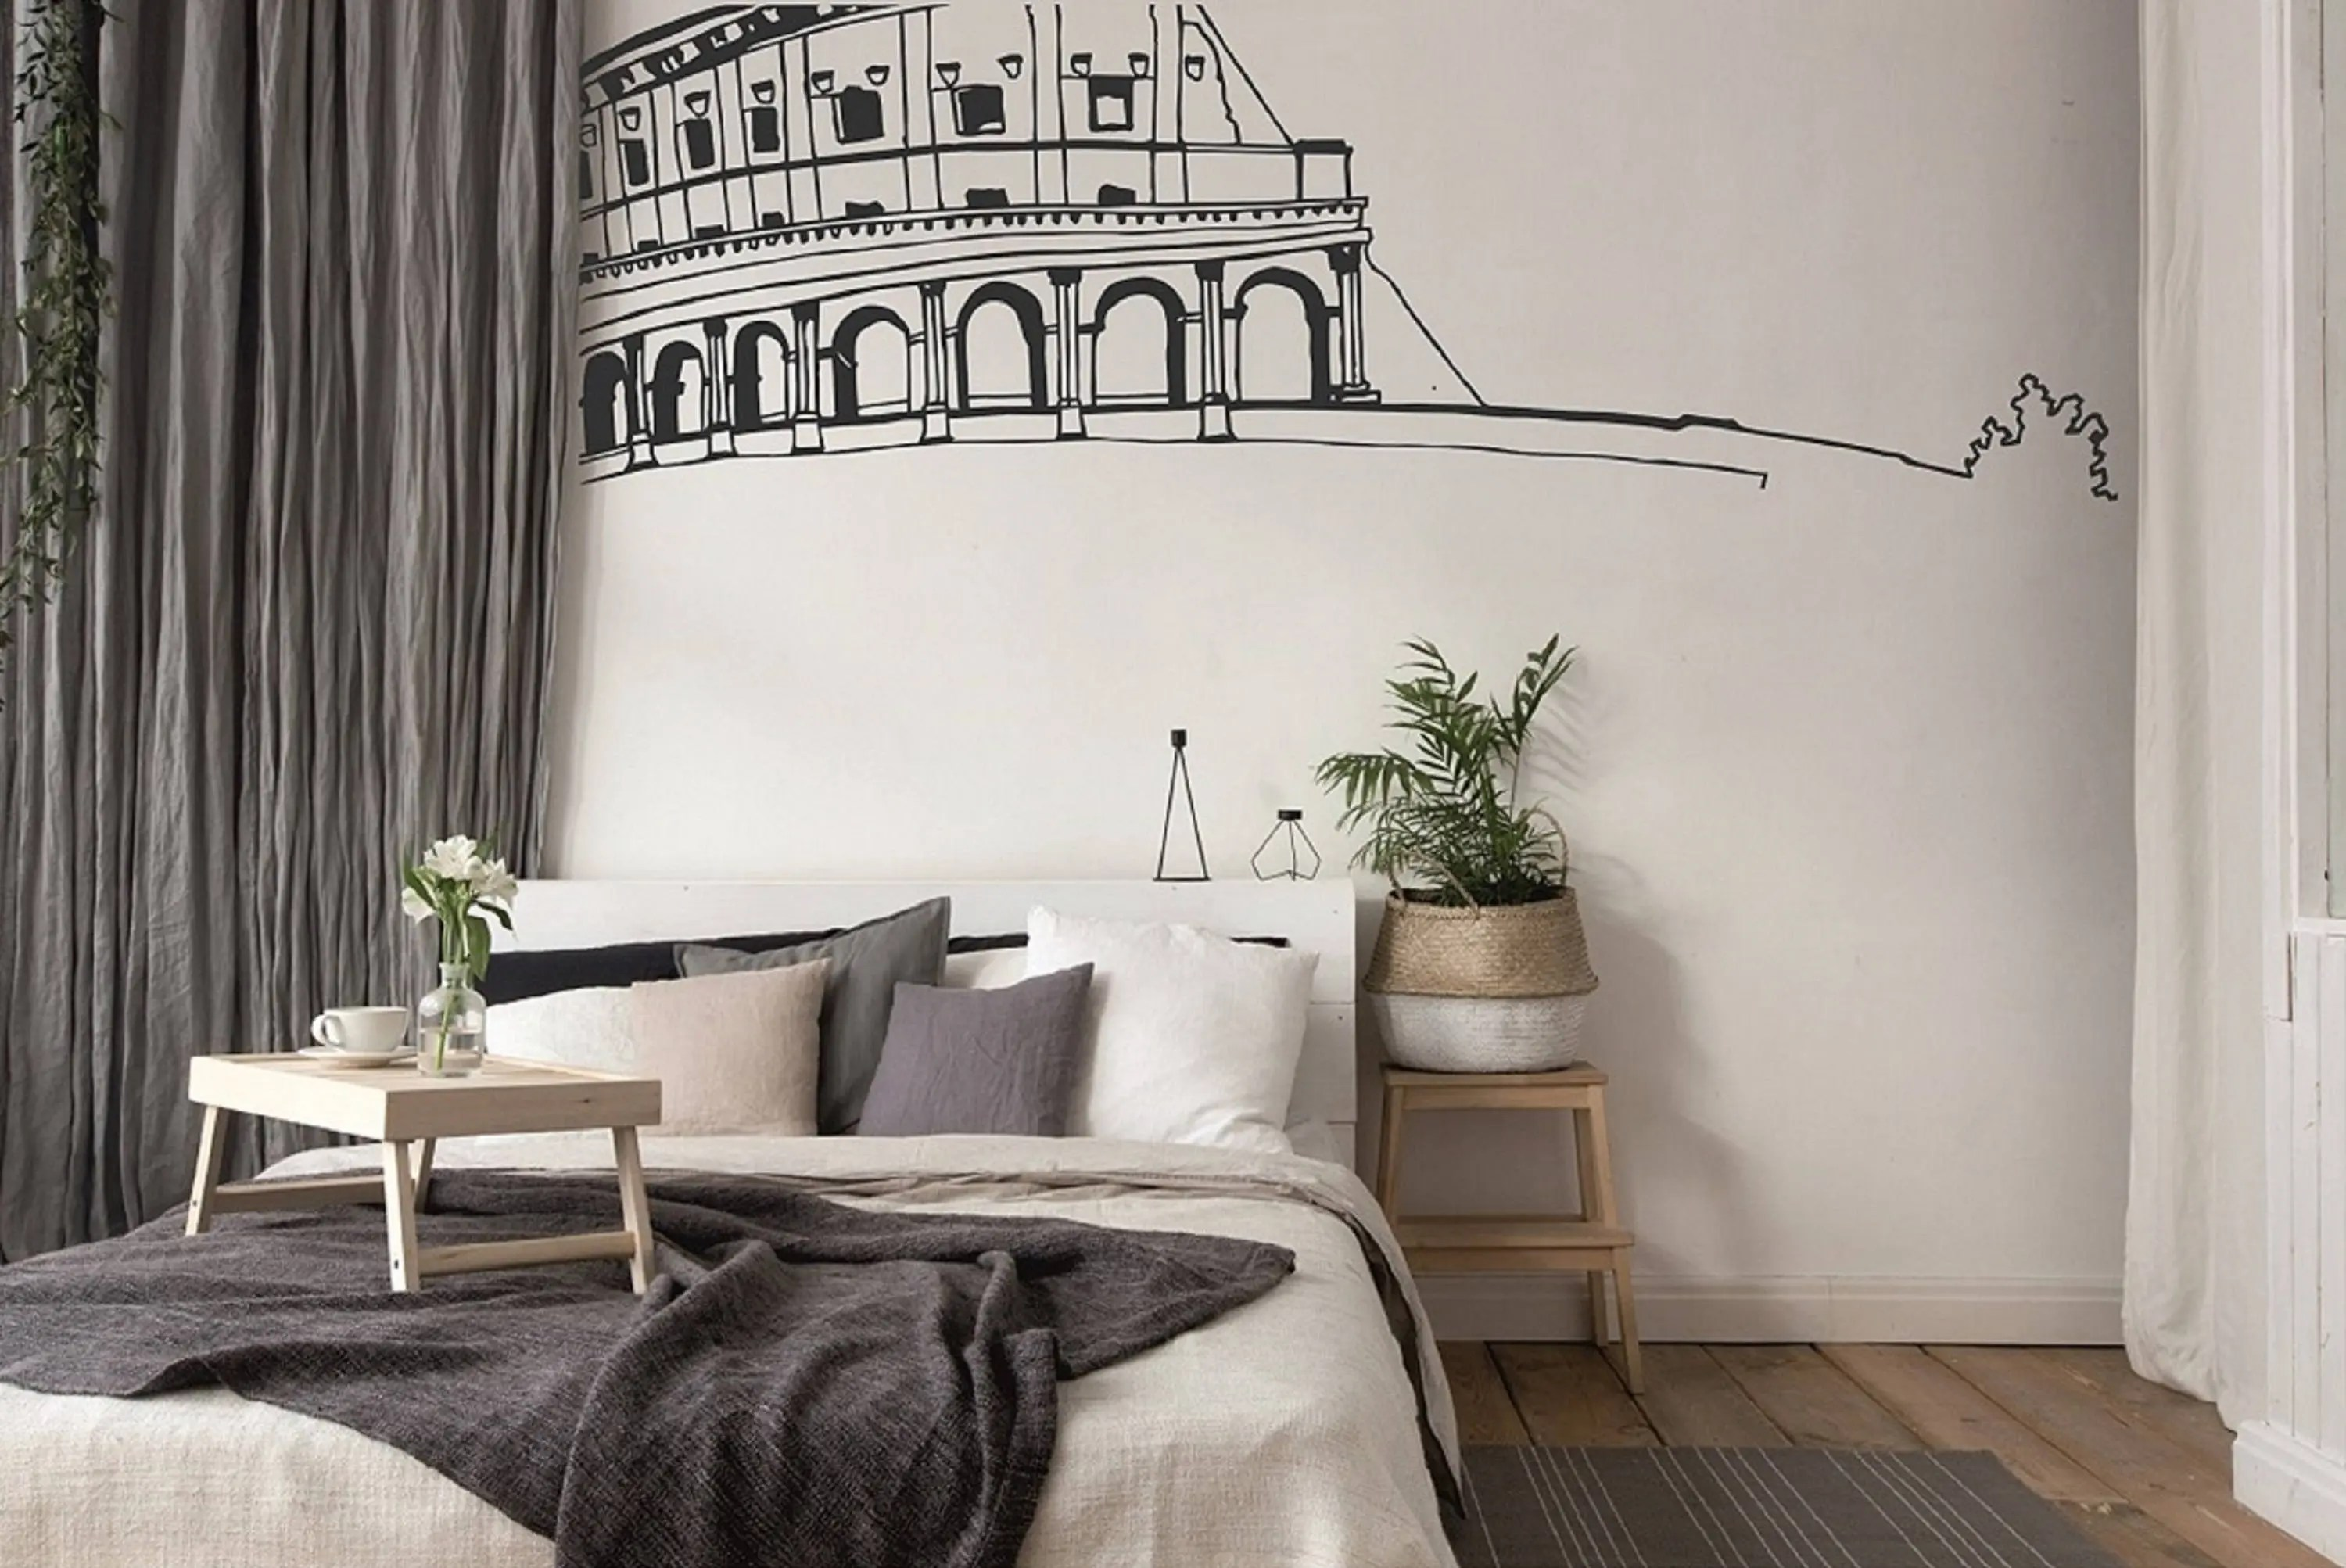 Roman Colosseum Wall Decal Artistic Wall Decor Unique Decals Bedroom Decal Living Room Wall Decal Interior Decoration Vinyl Wall Decal